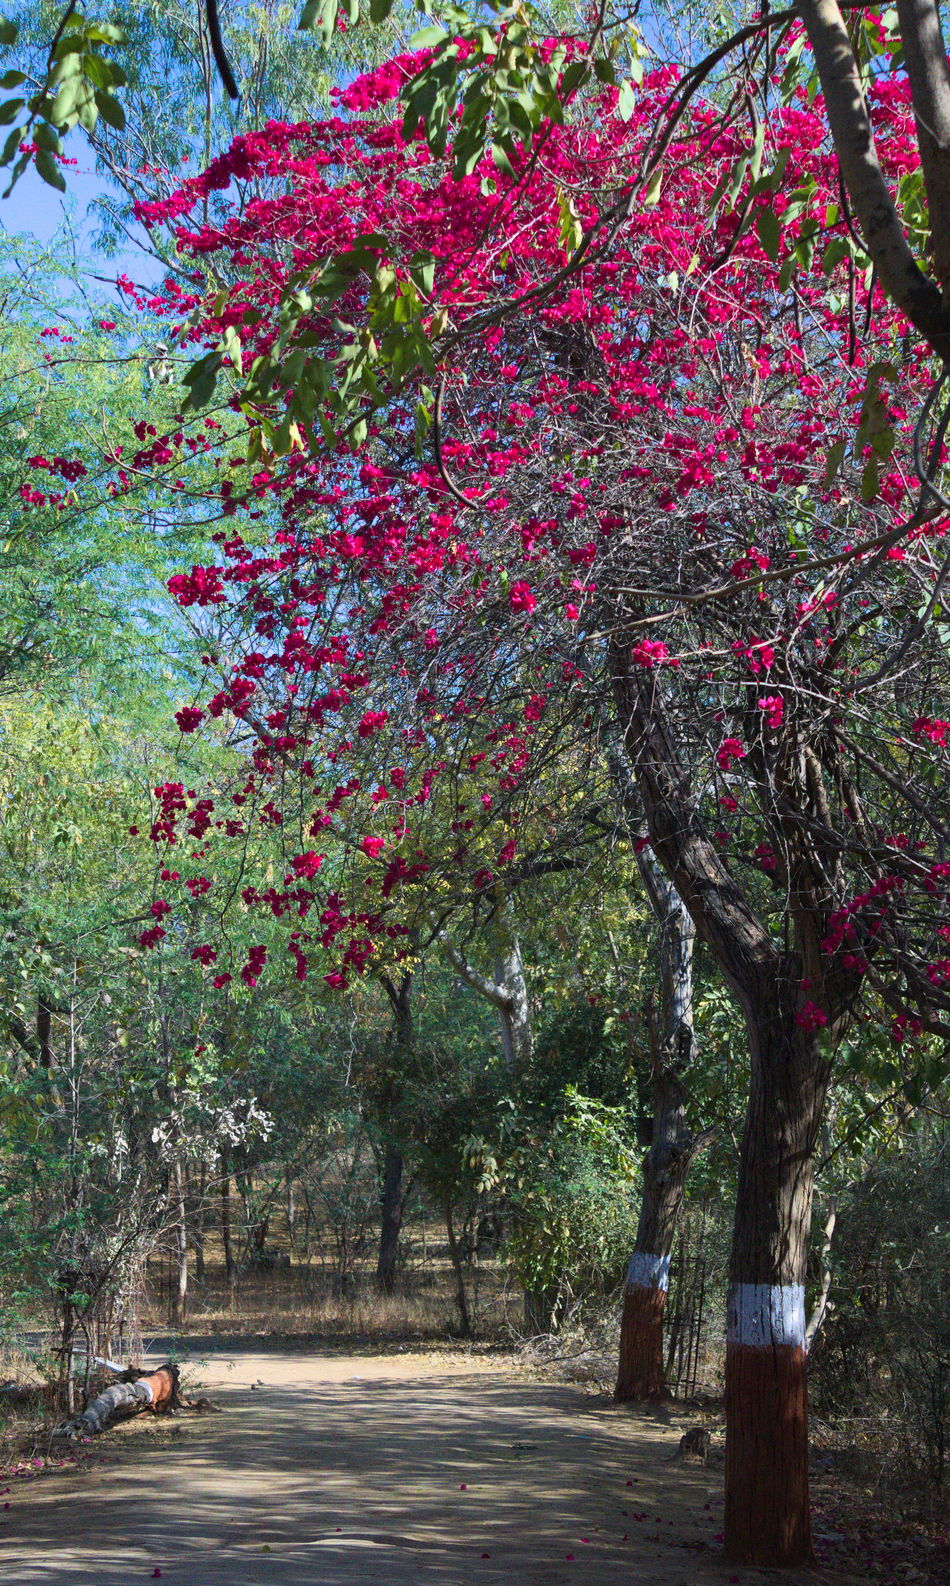 Tree Beauty In Nature Branch Branches No Leaves Chirag Nimavat Chiragnimavat Landscape Nature Photography Tree Autumn Leaves Autumn Tree Pink Flowers Green Background Pink Flowers In Bloom Pink Flowers Green Grass Pink Flowers Tree Pink Tree Blossom Pink Tree EyeEmNewHere